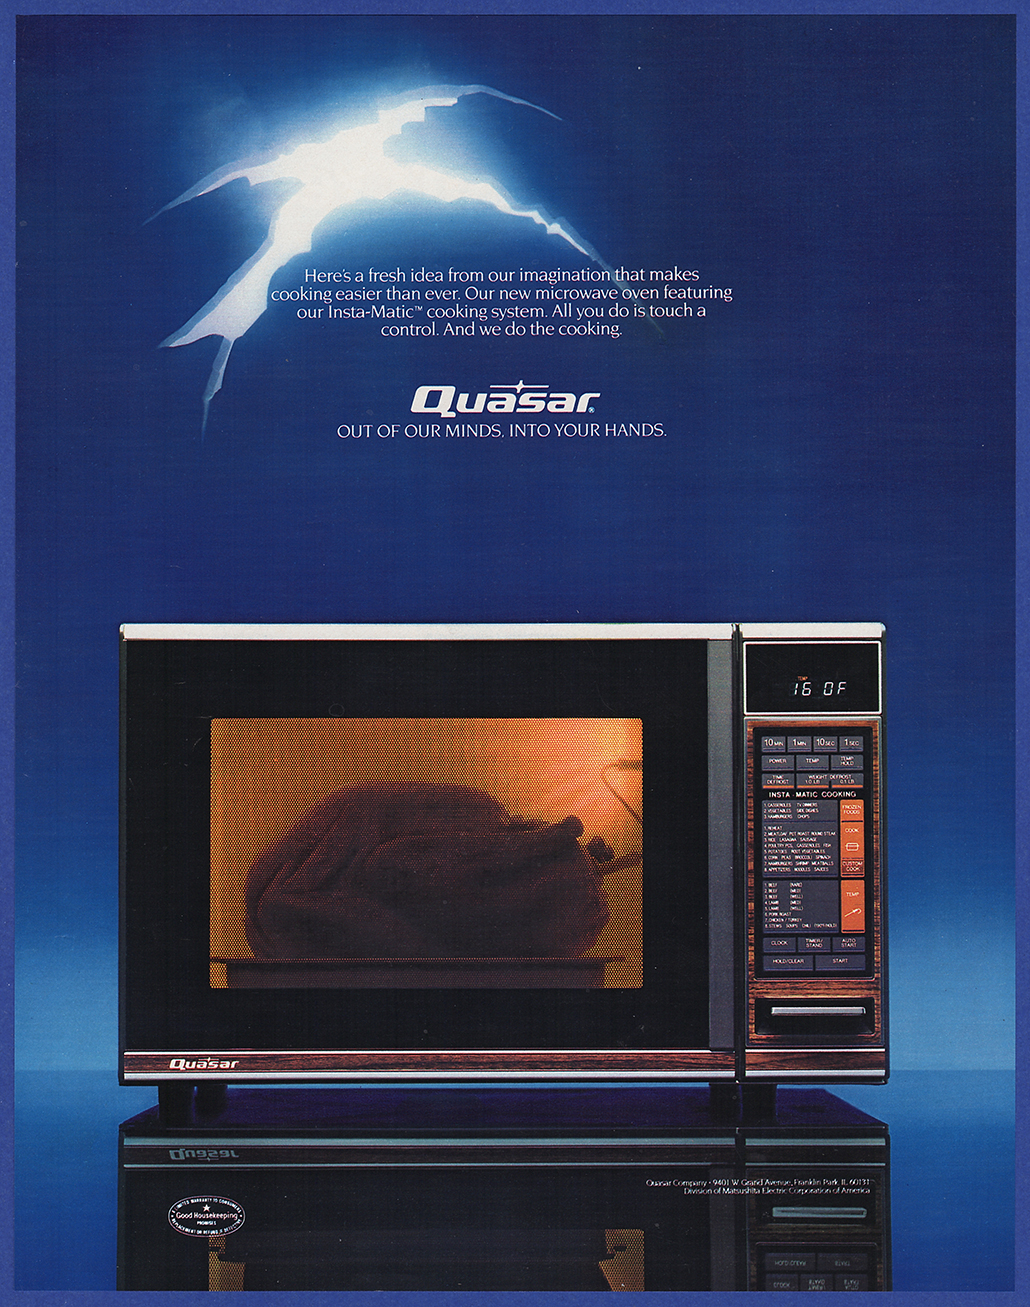 Vintage 1984 Quasar Microwave Oven Appliance Kitchen Art